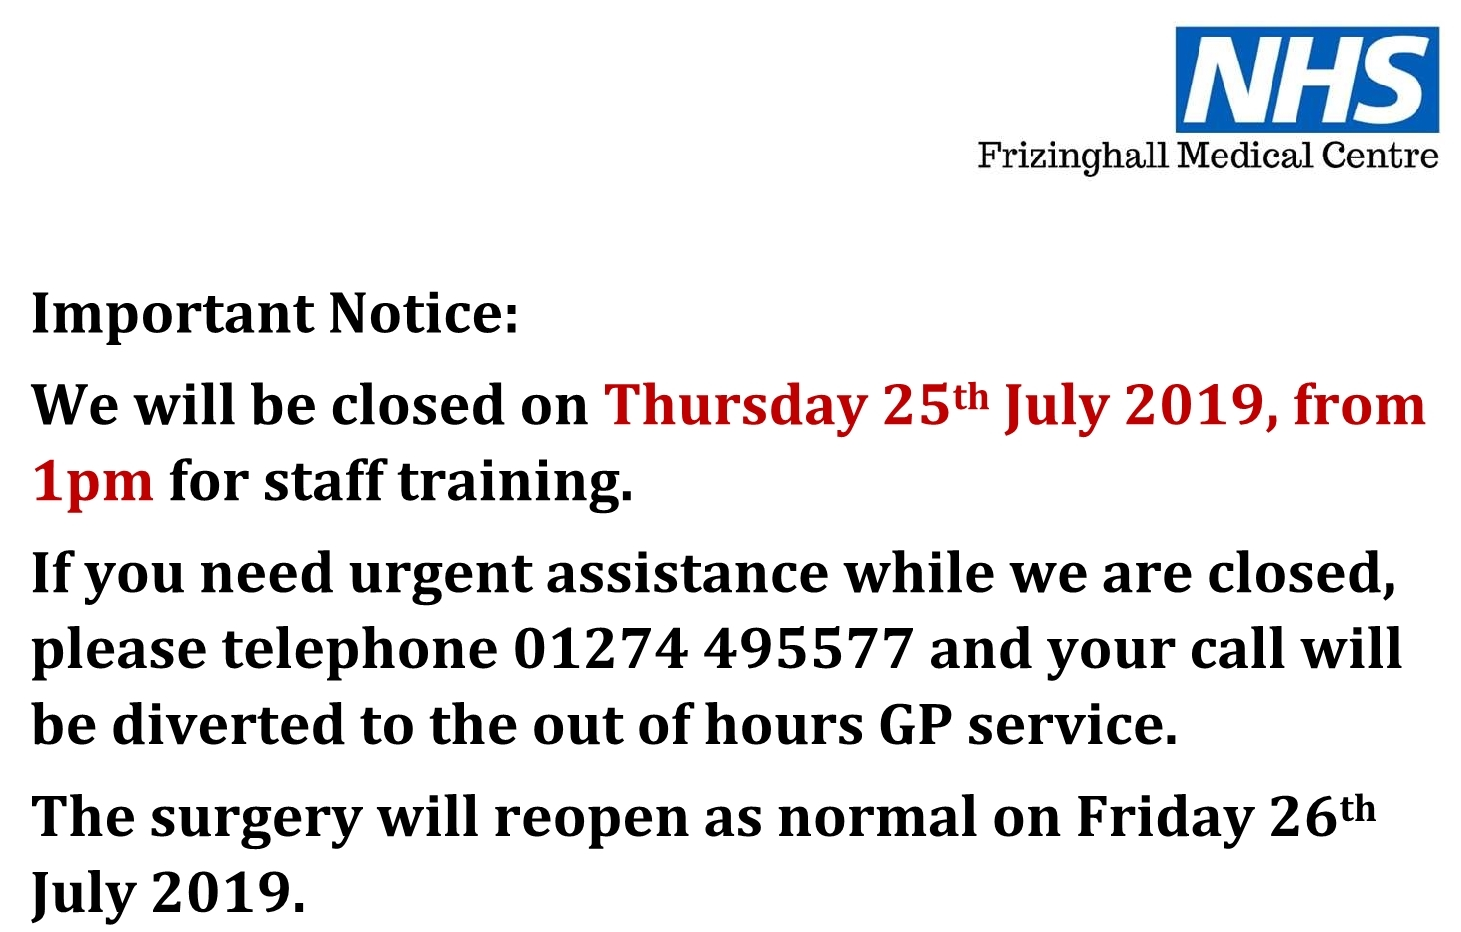 Closing on Thursday 25th July 2019